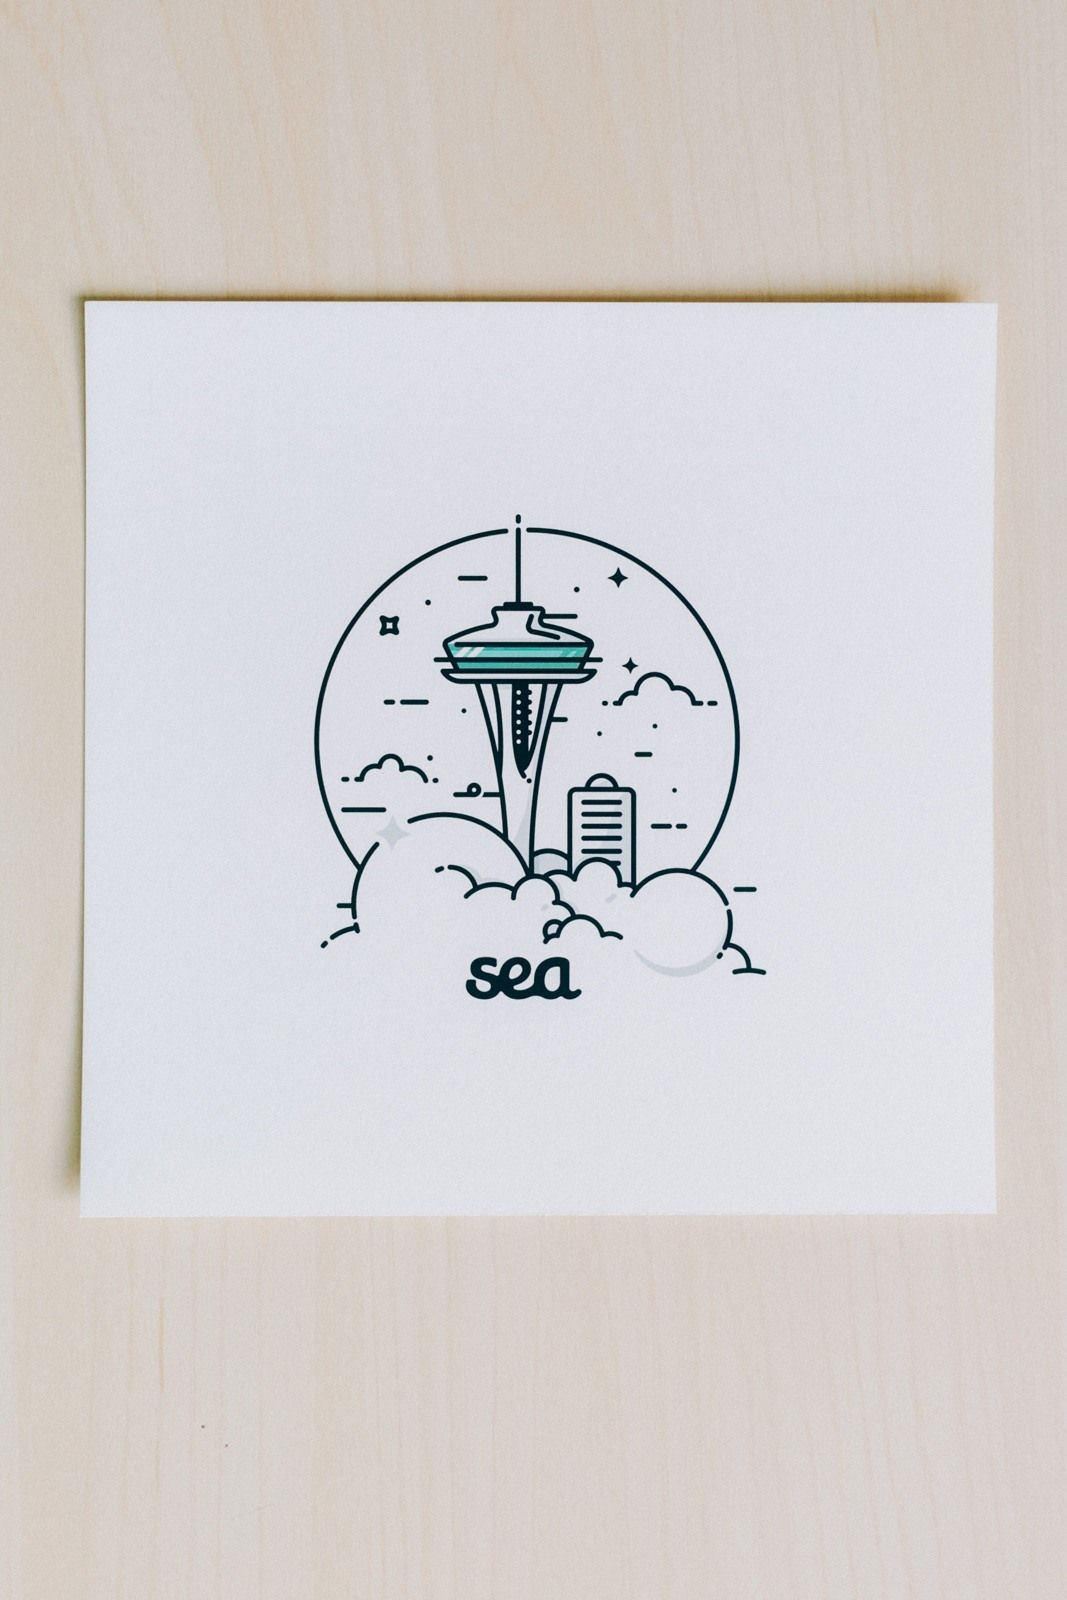 Seattle Flow Map%0A format cover letters